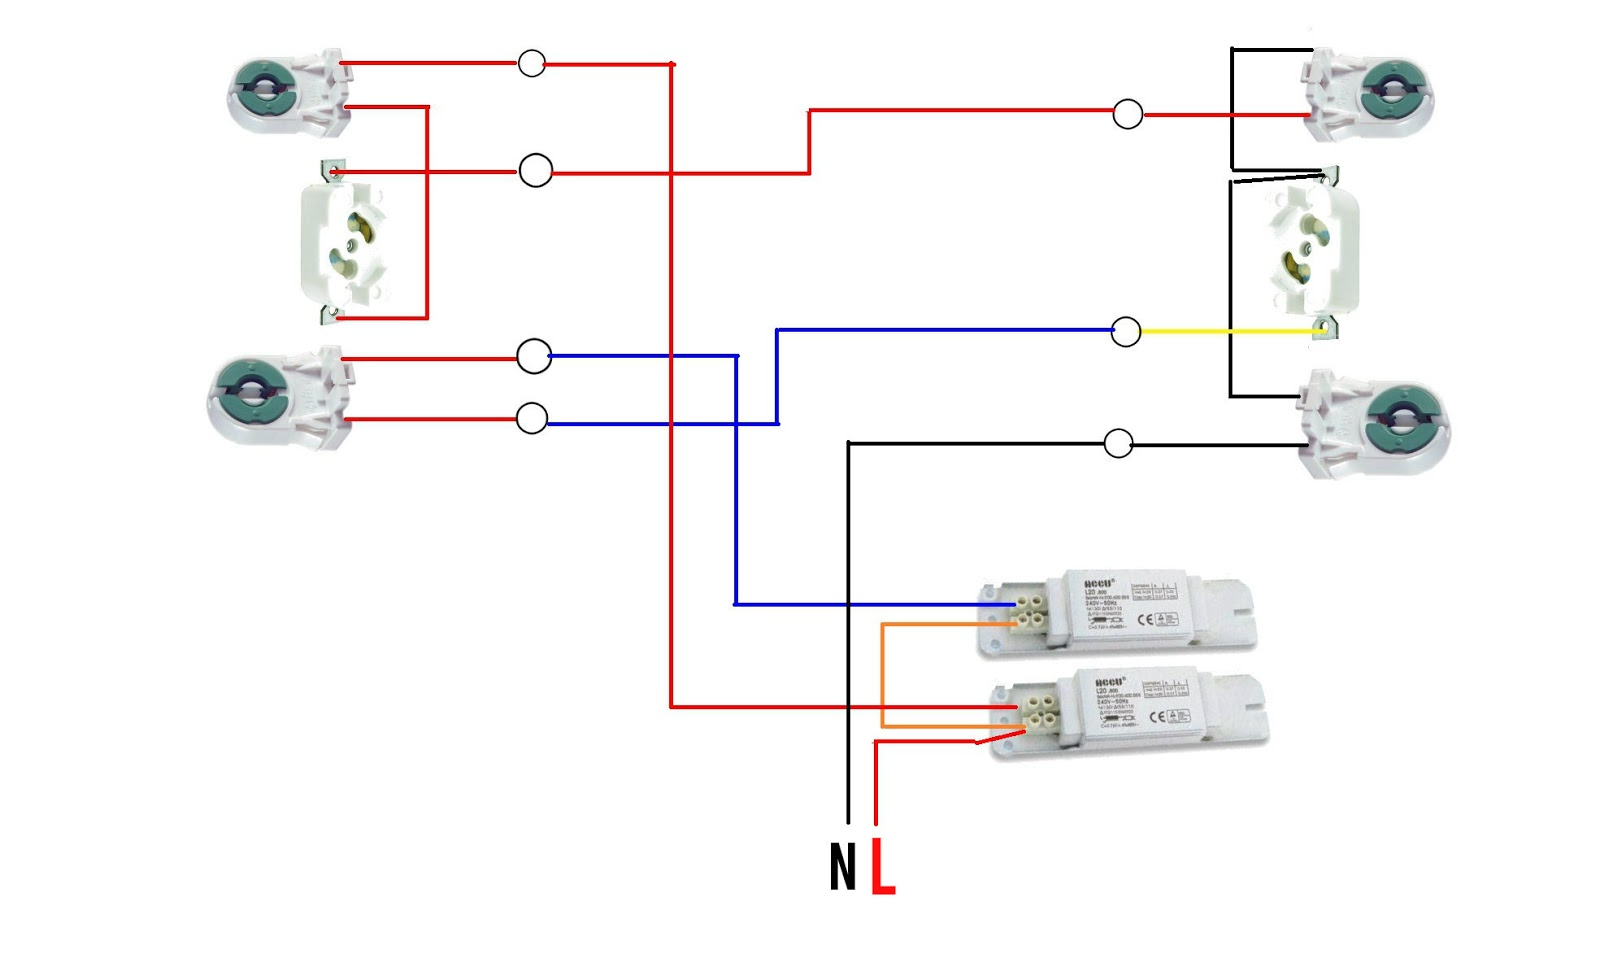 fluorescent ballast replacement wiring diagram 2006 honda civic the world through electricity double light